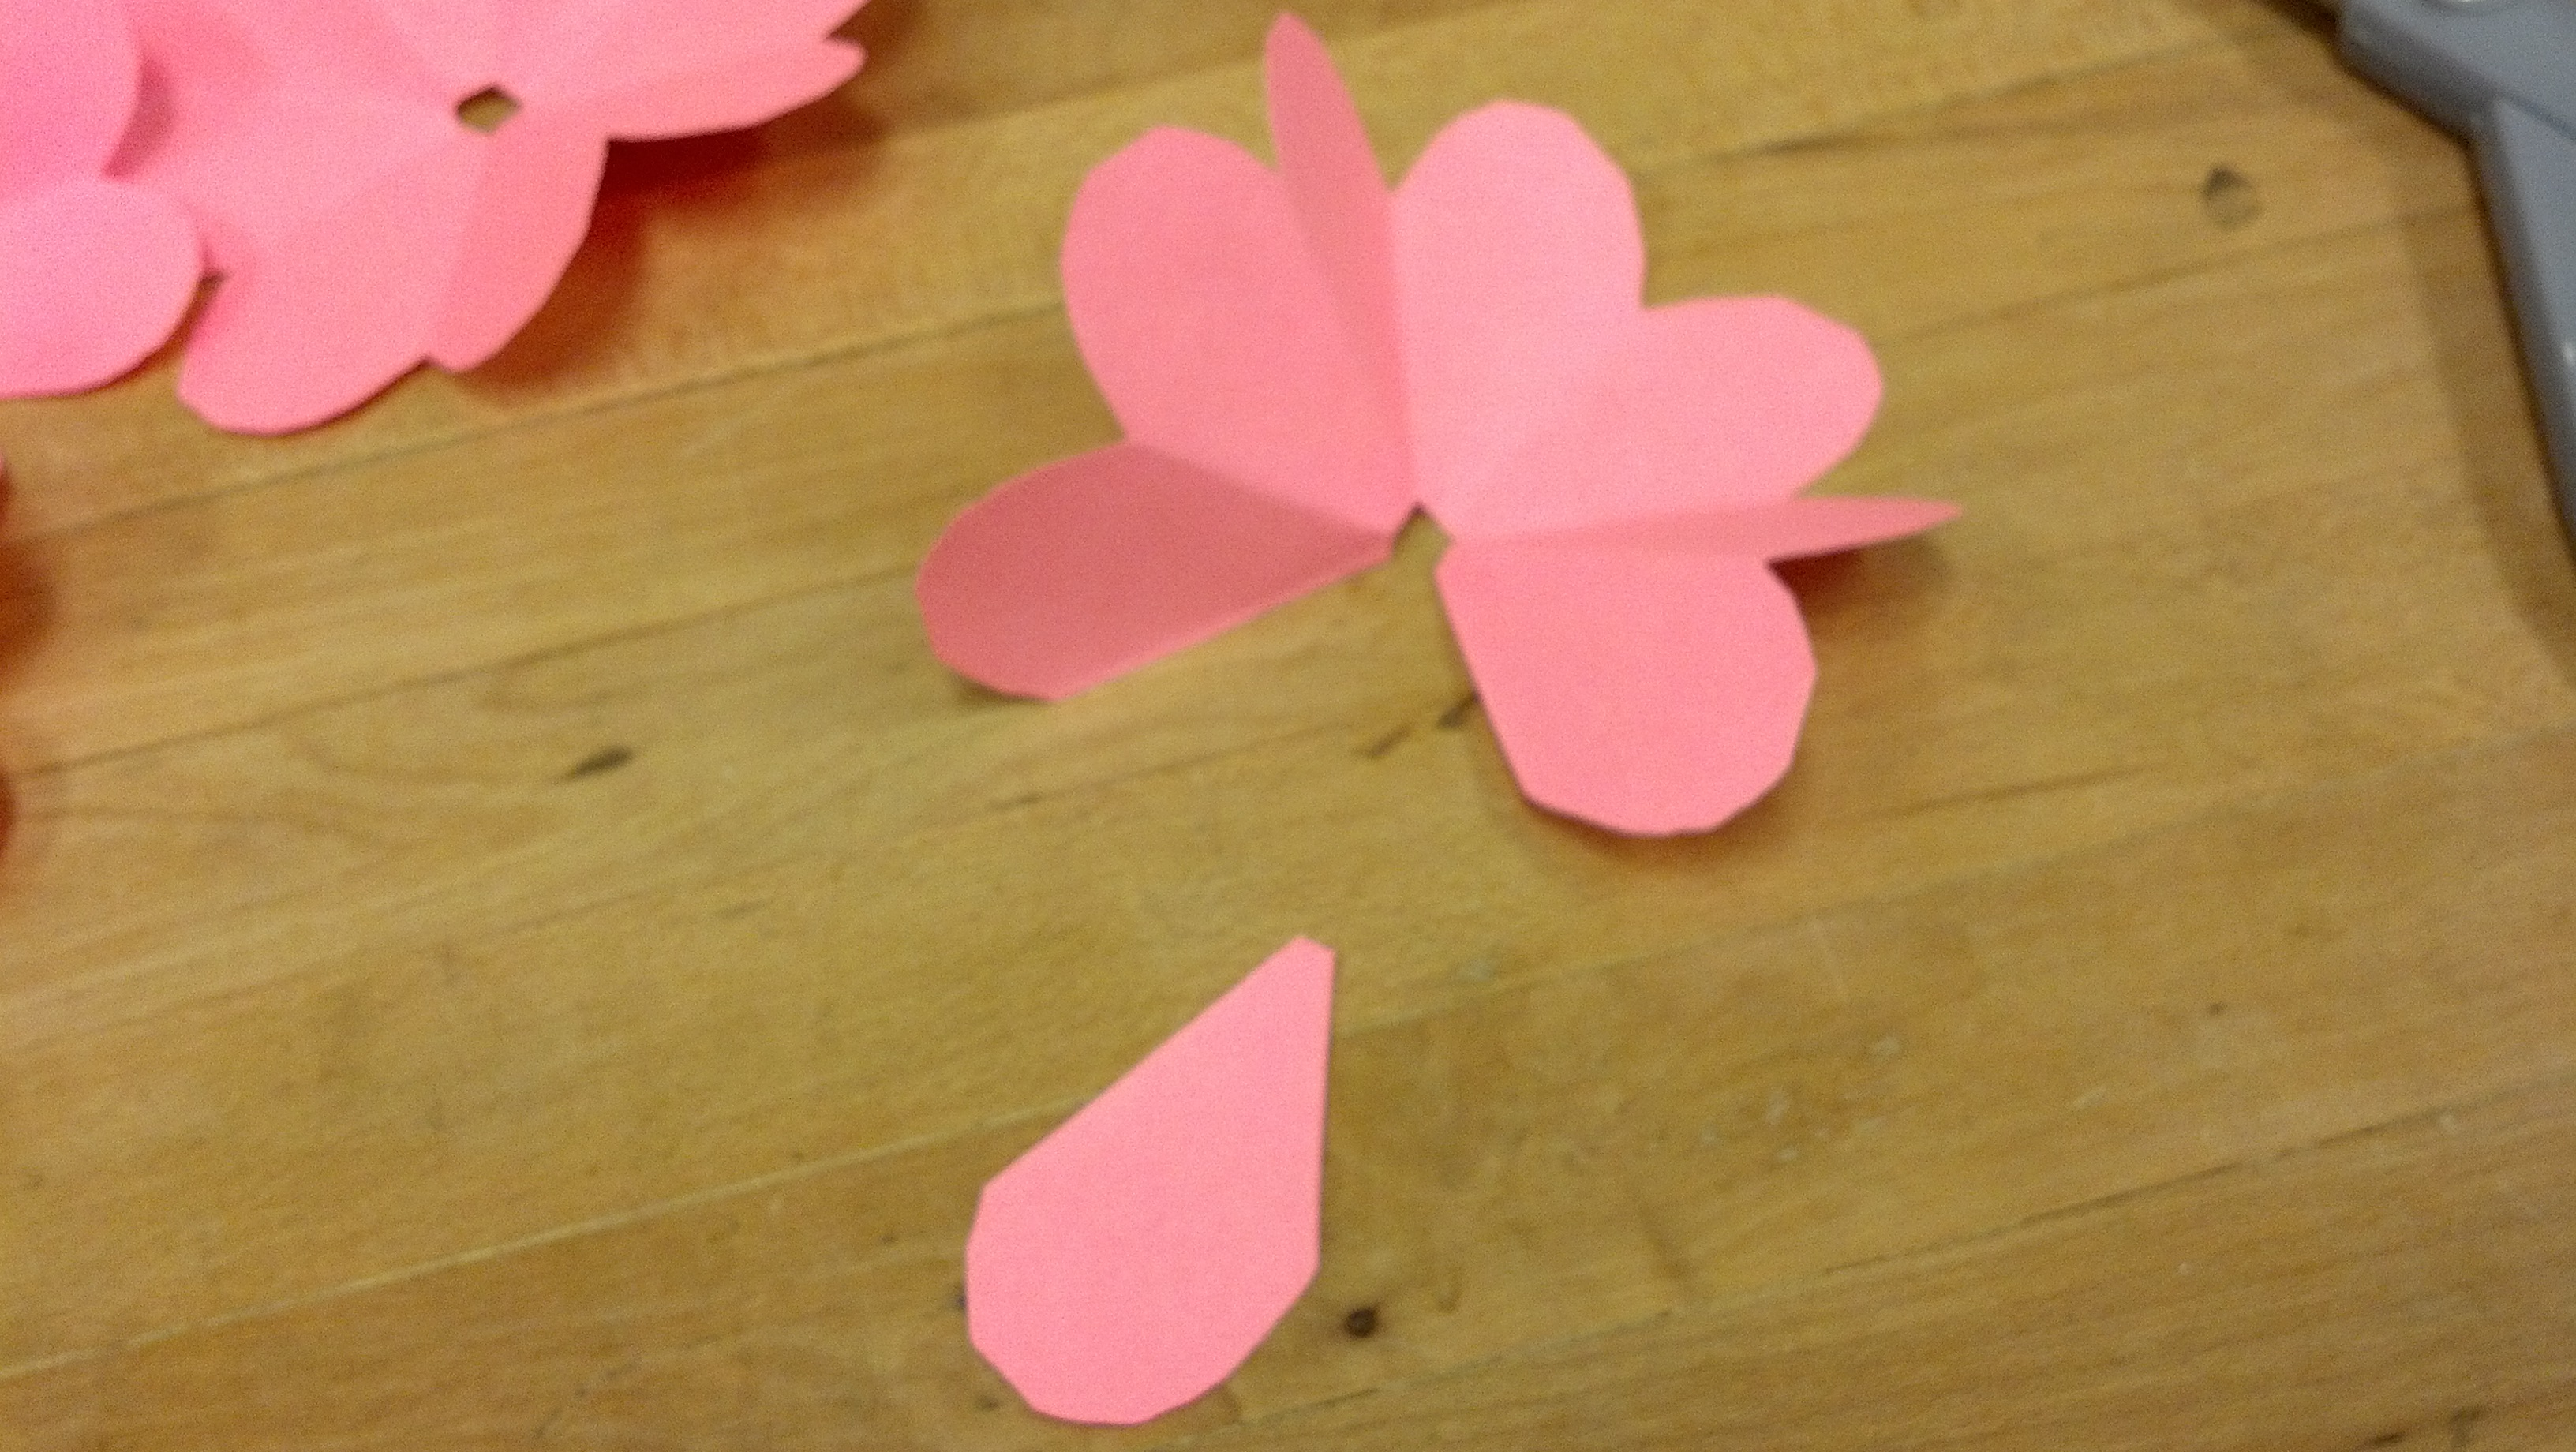 Picture of Cutting Out the Petals and Preparing to Create Flowers and Petals